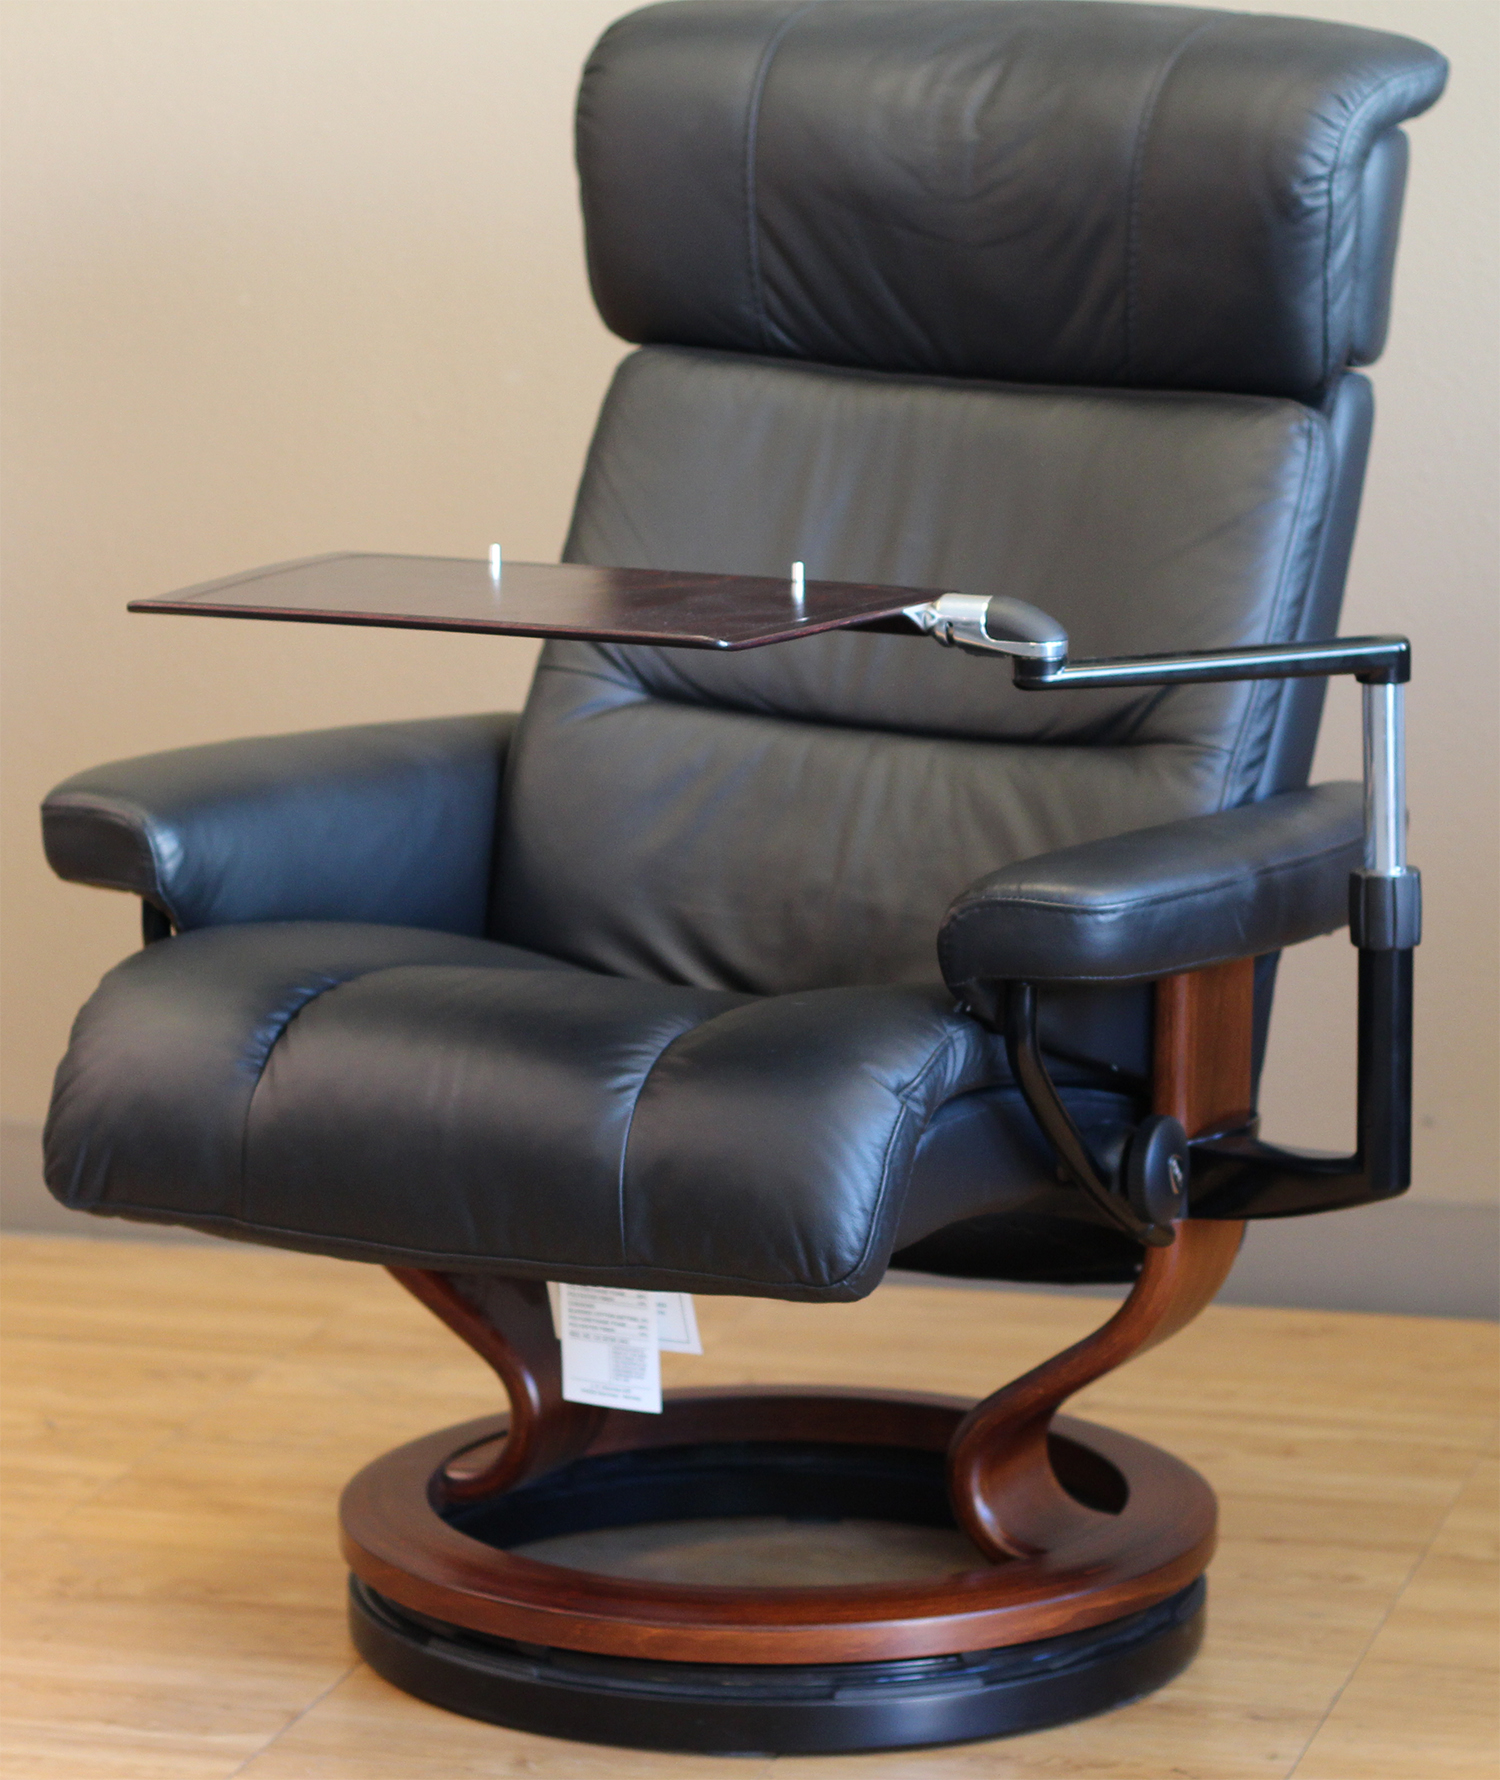 stressless chair prices. Stressless Personal Computer Table Chair Prices E